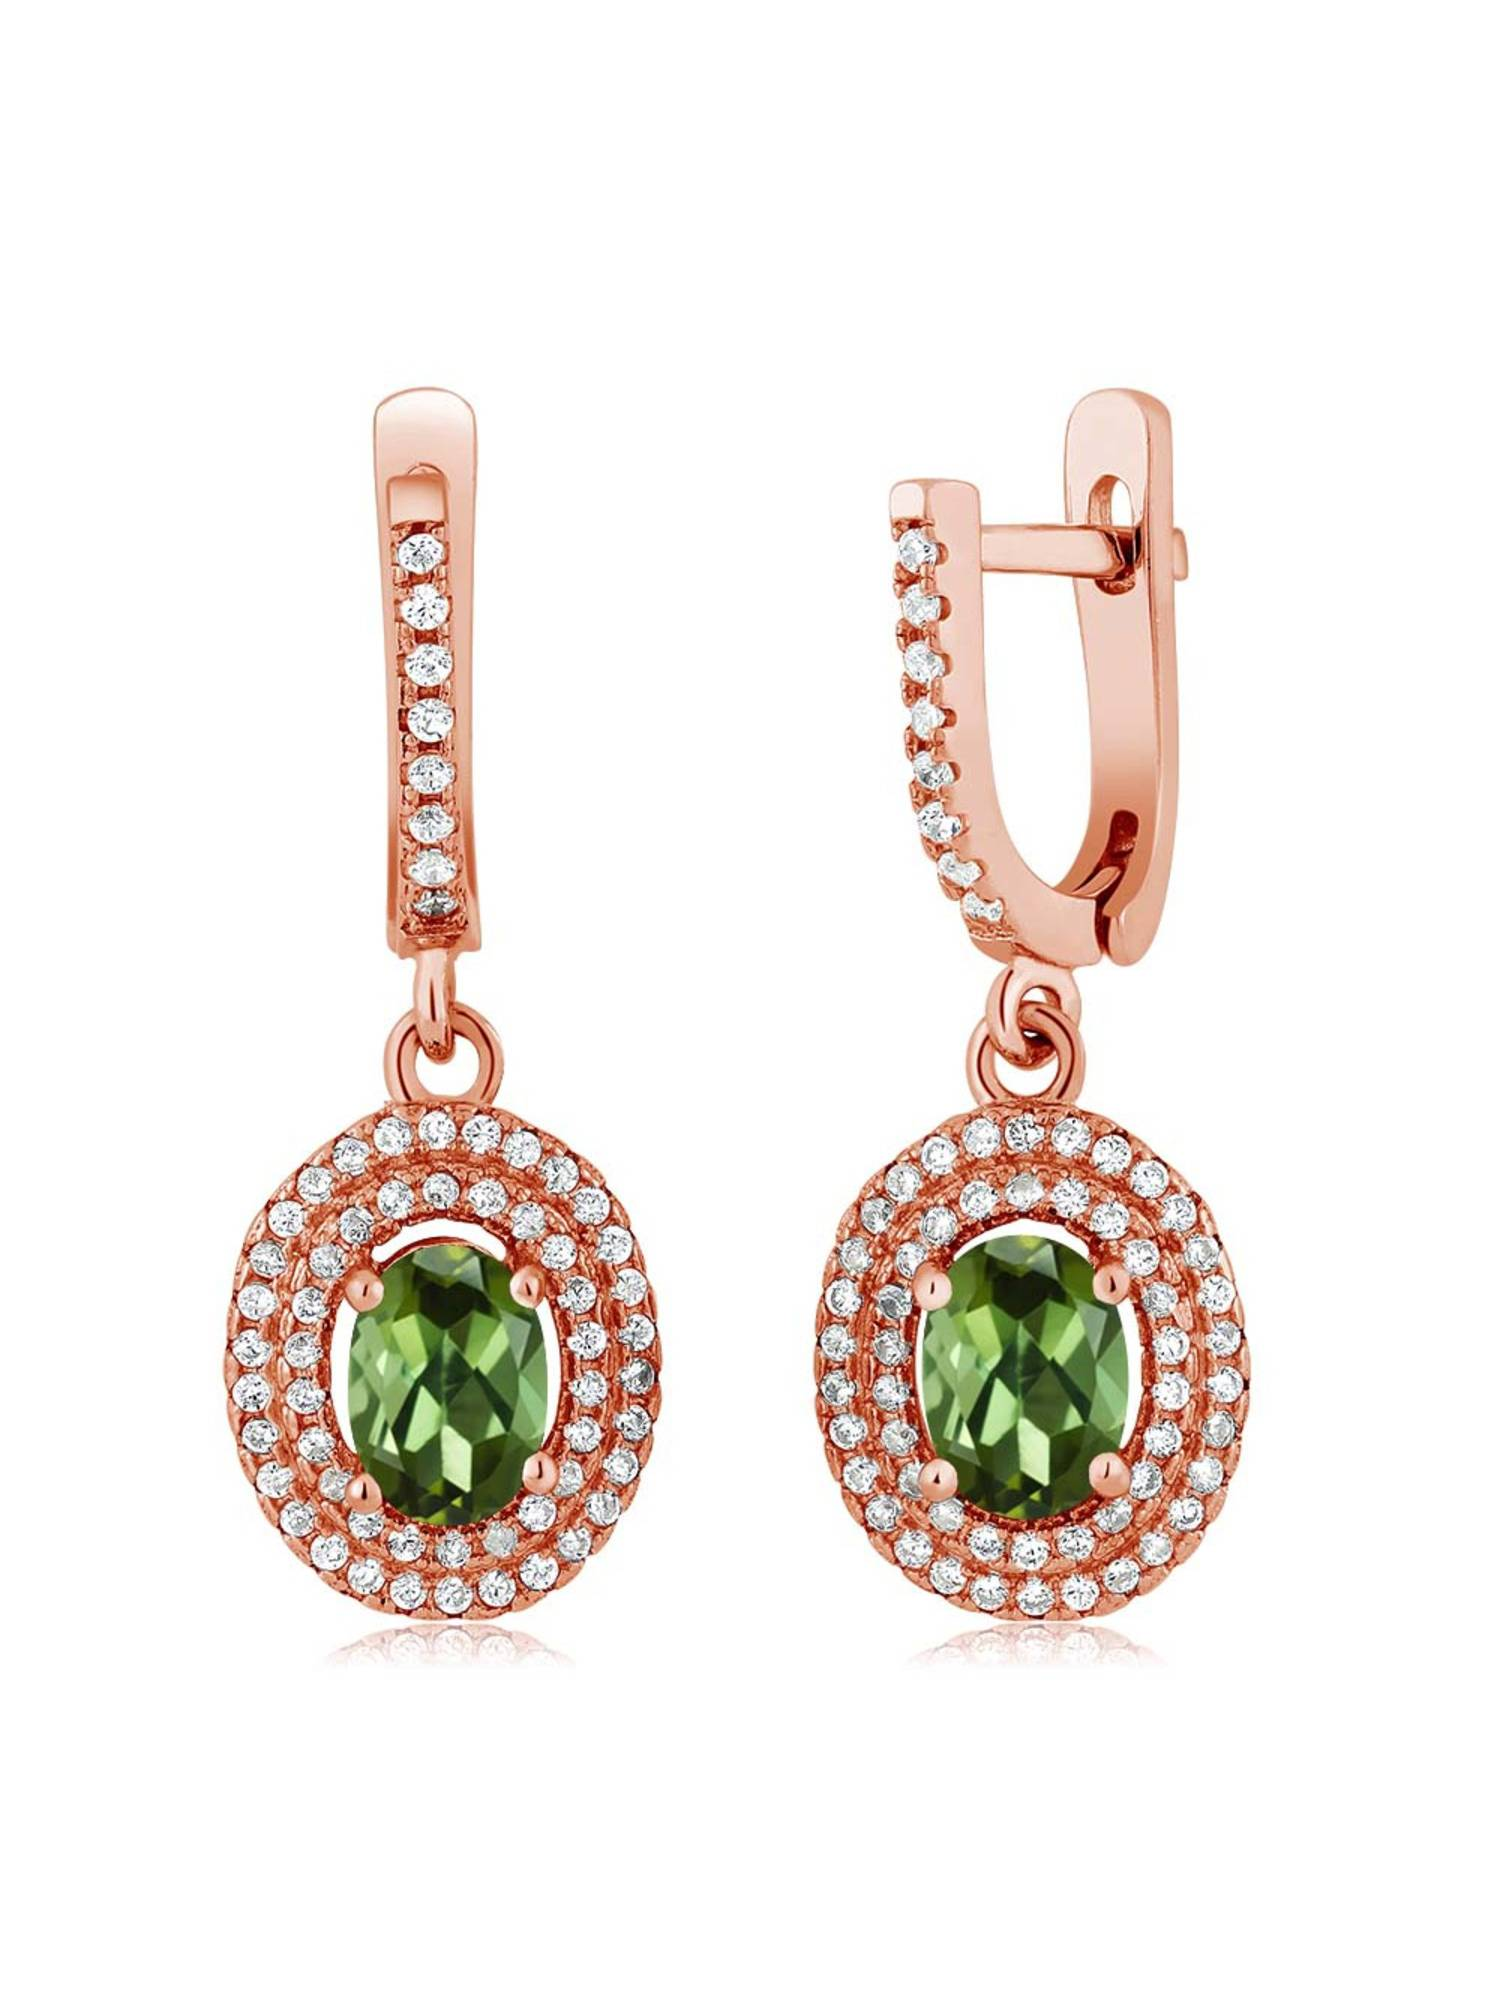 2.52 Ct Oval Green Tourmaline 925 Rose Gold Plated Silver Earrings by